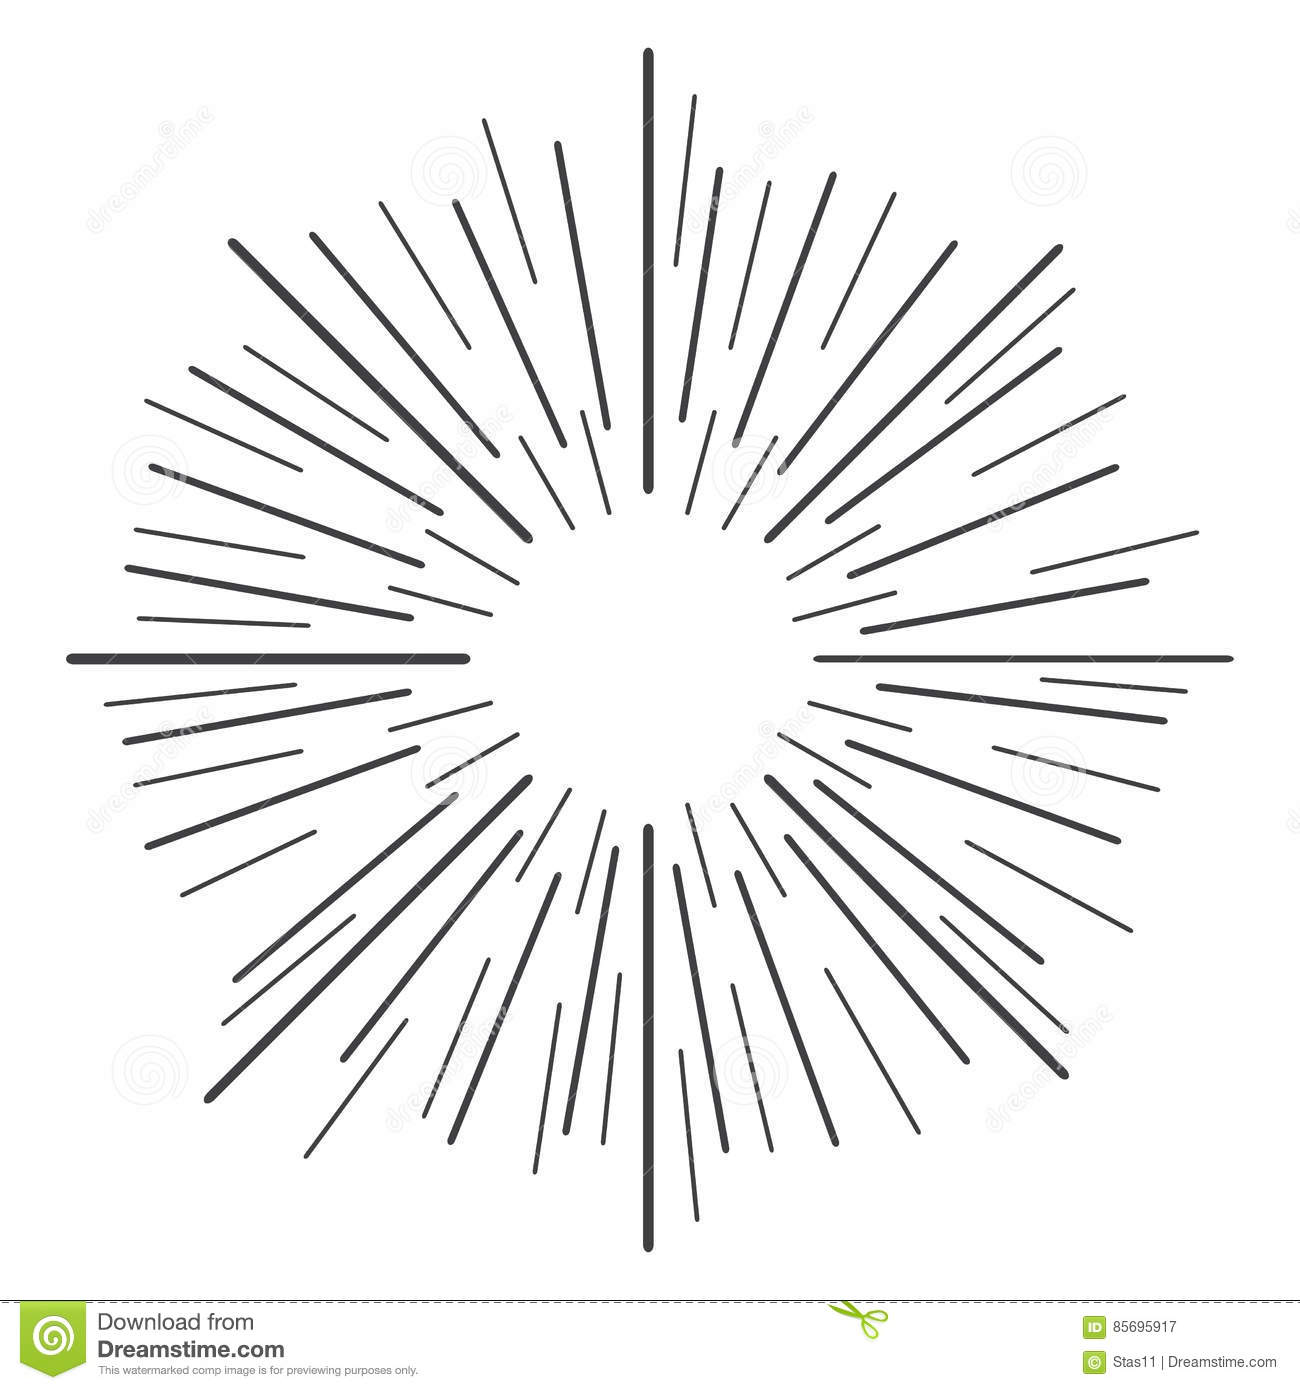 Linear Drawing Of Rays Of The Sun In Vintage Style Vector